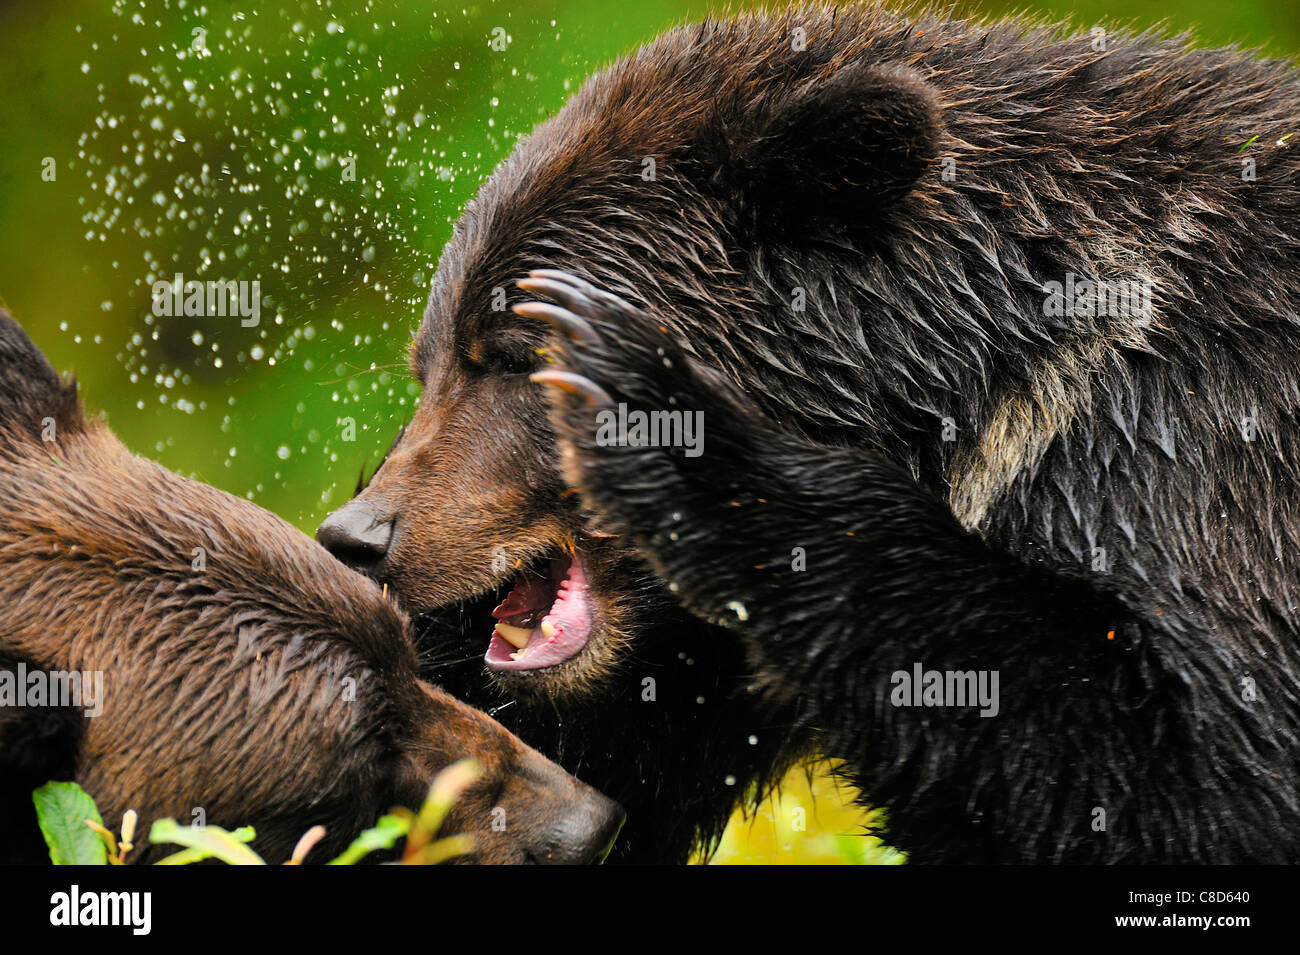 Grizzly bears fighting,playing being aggressive with each other. - Stock Image